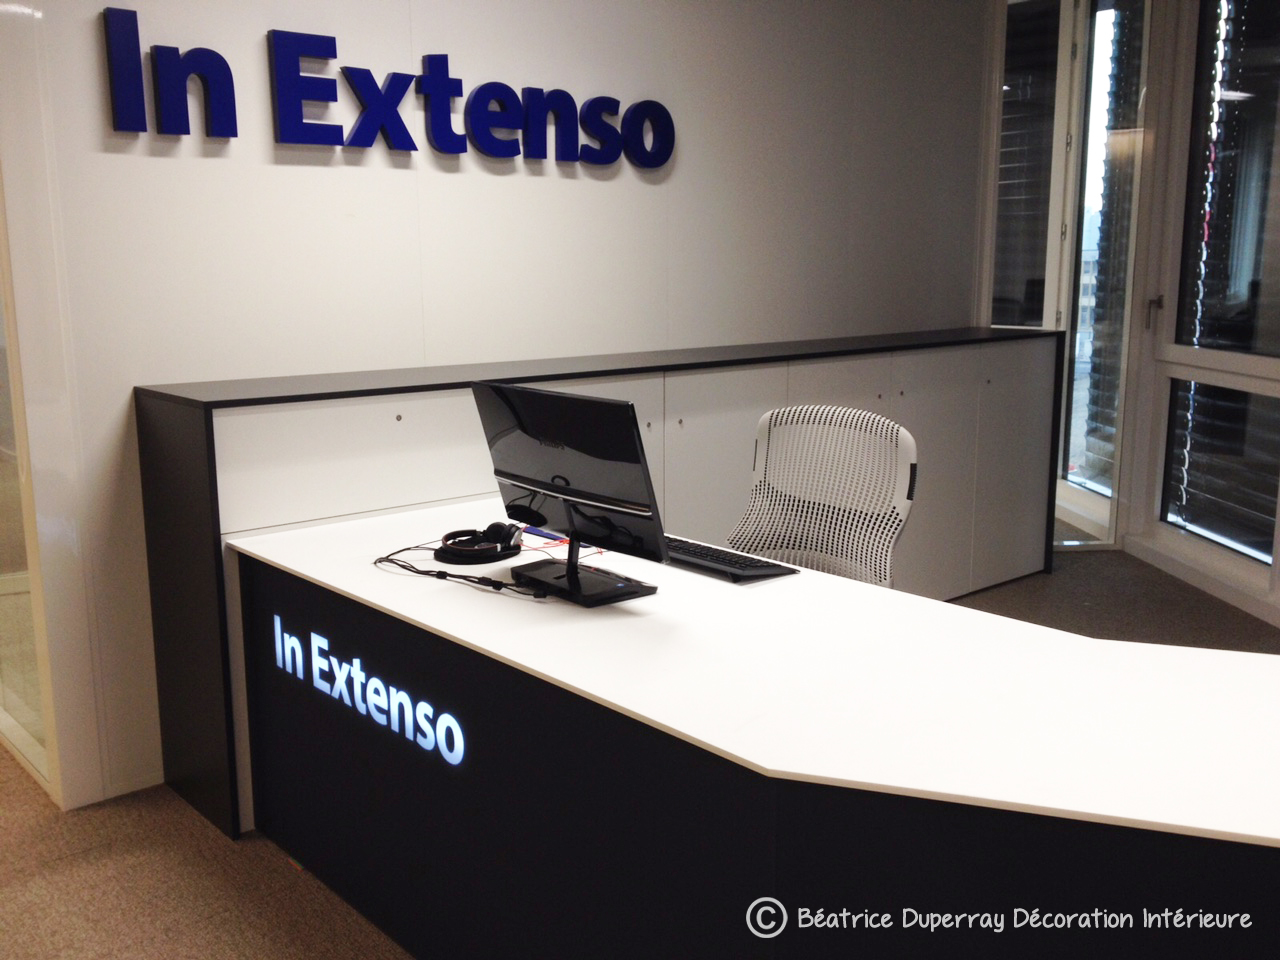 IN EXTENSO CONFLUENCE-BANQUE ACCUEIL